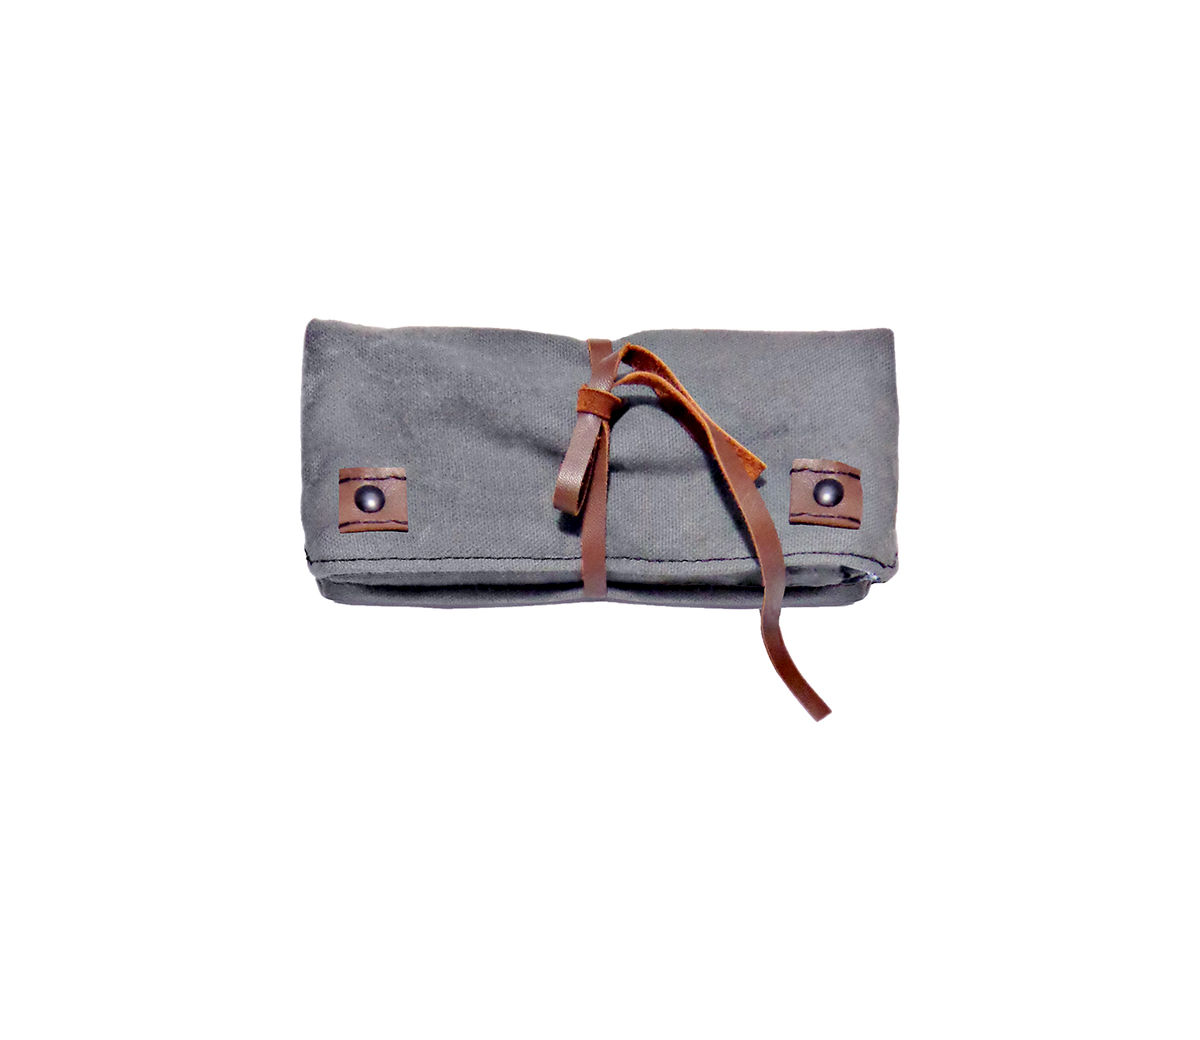 Waxed Canvas Pencil Case with Leather, Roll Out Sleeve - product images  of